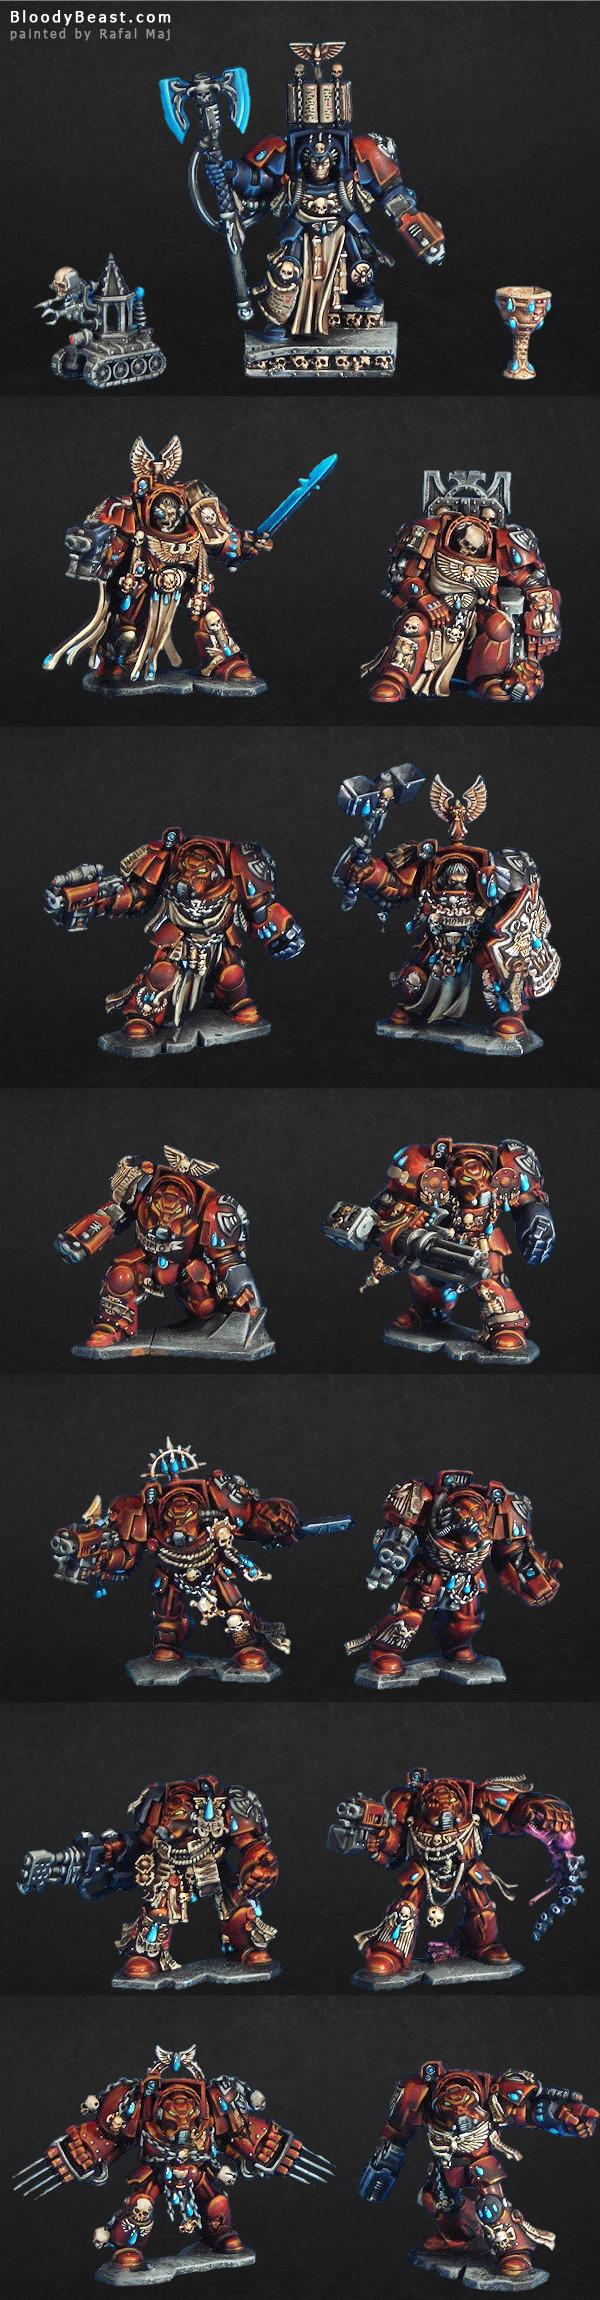 Space Hulk 3rd Edition Painted painted by Rafal Maj (BloodyBeast.com)